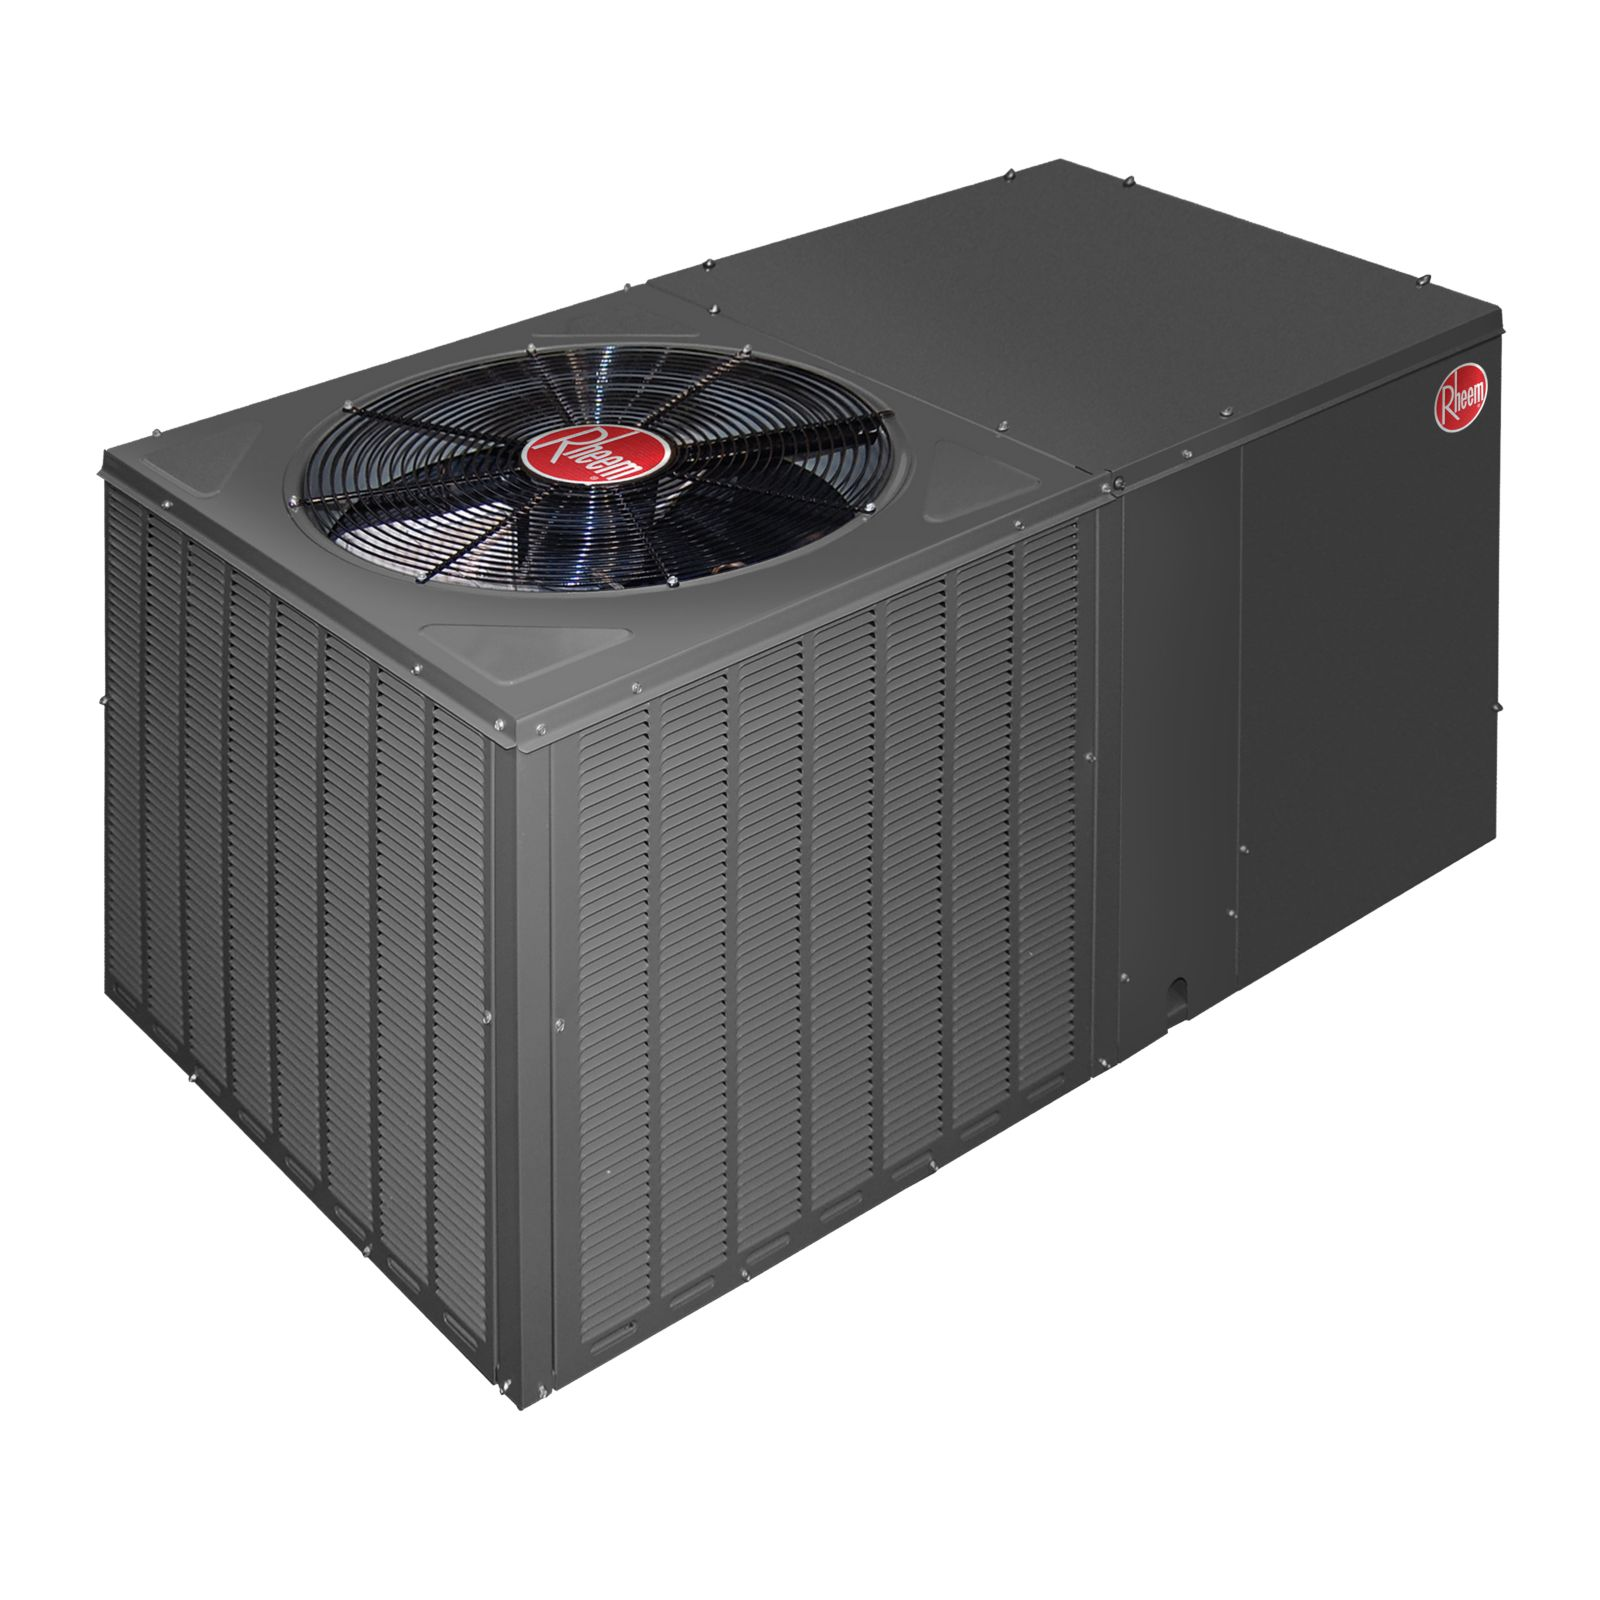 Rheem RQPM-A037JK000 - Classic 3 Ton, 14 SEER, R410A, Packaged Heat Pump With Horizontal Discharge, 208-230 V, 1 Ph, 60 Hz